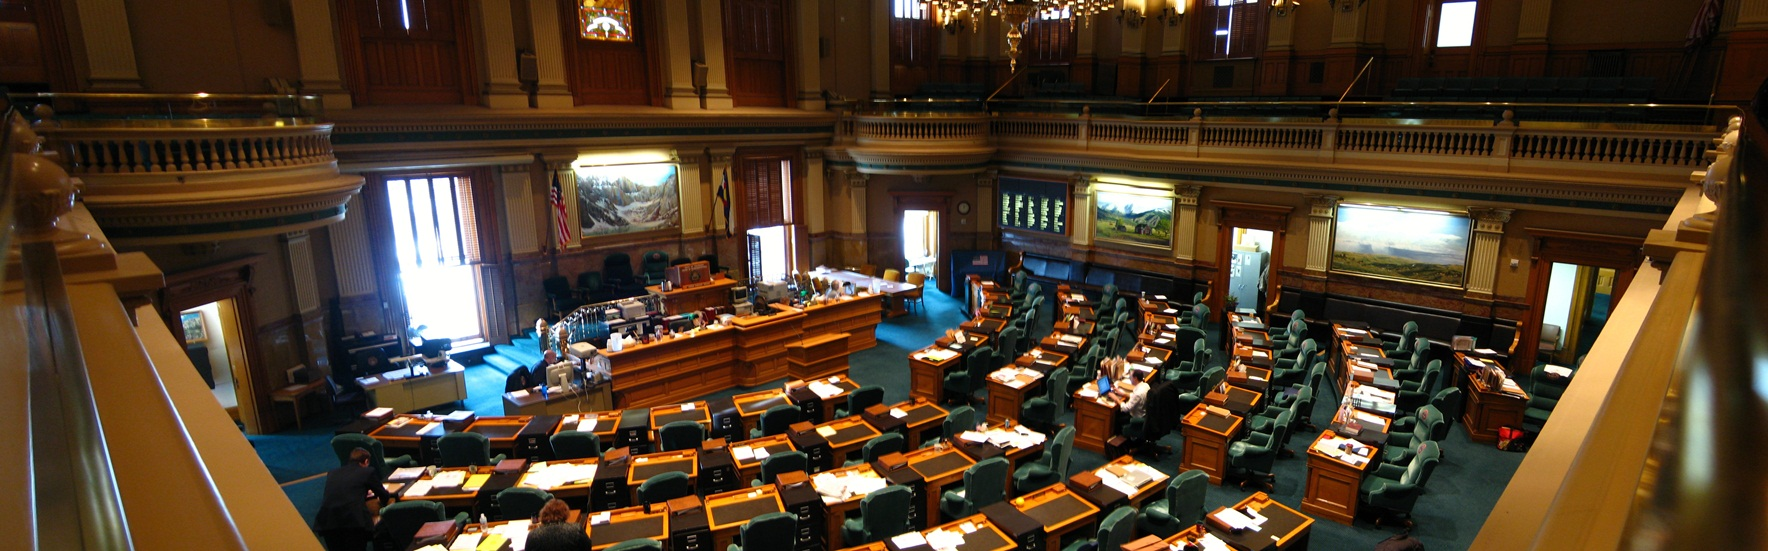 ColoradoStateCapitolHouseOfRepresentatives_smaller